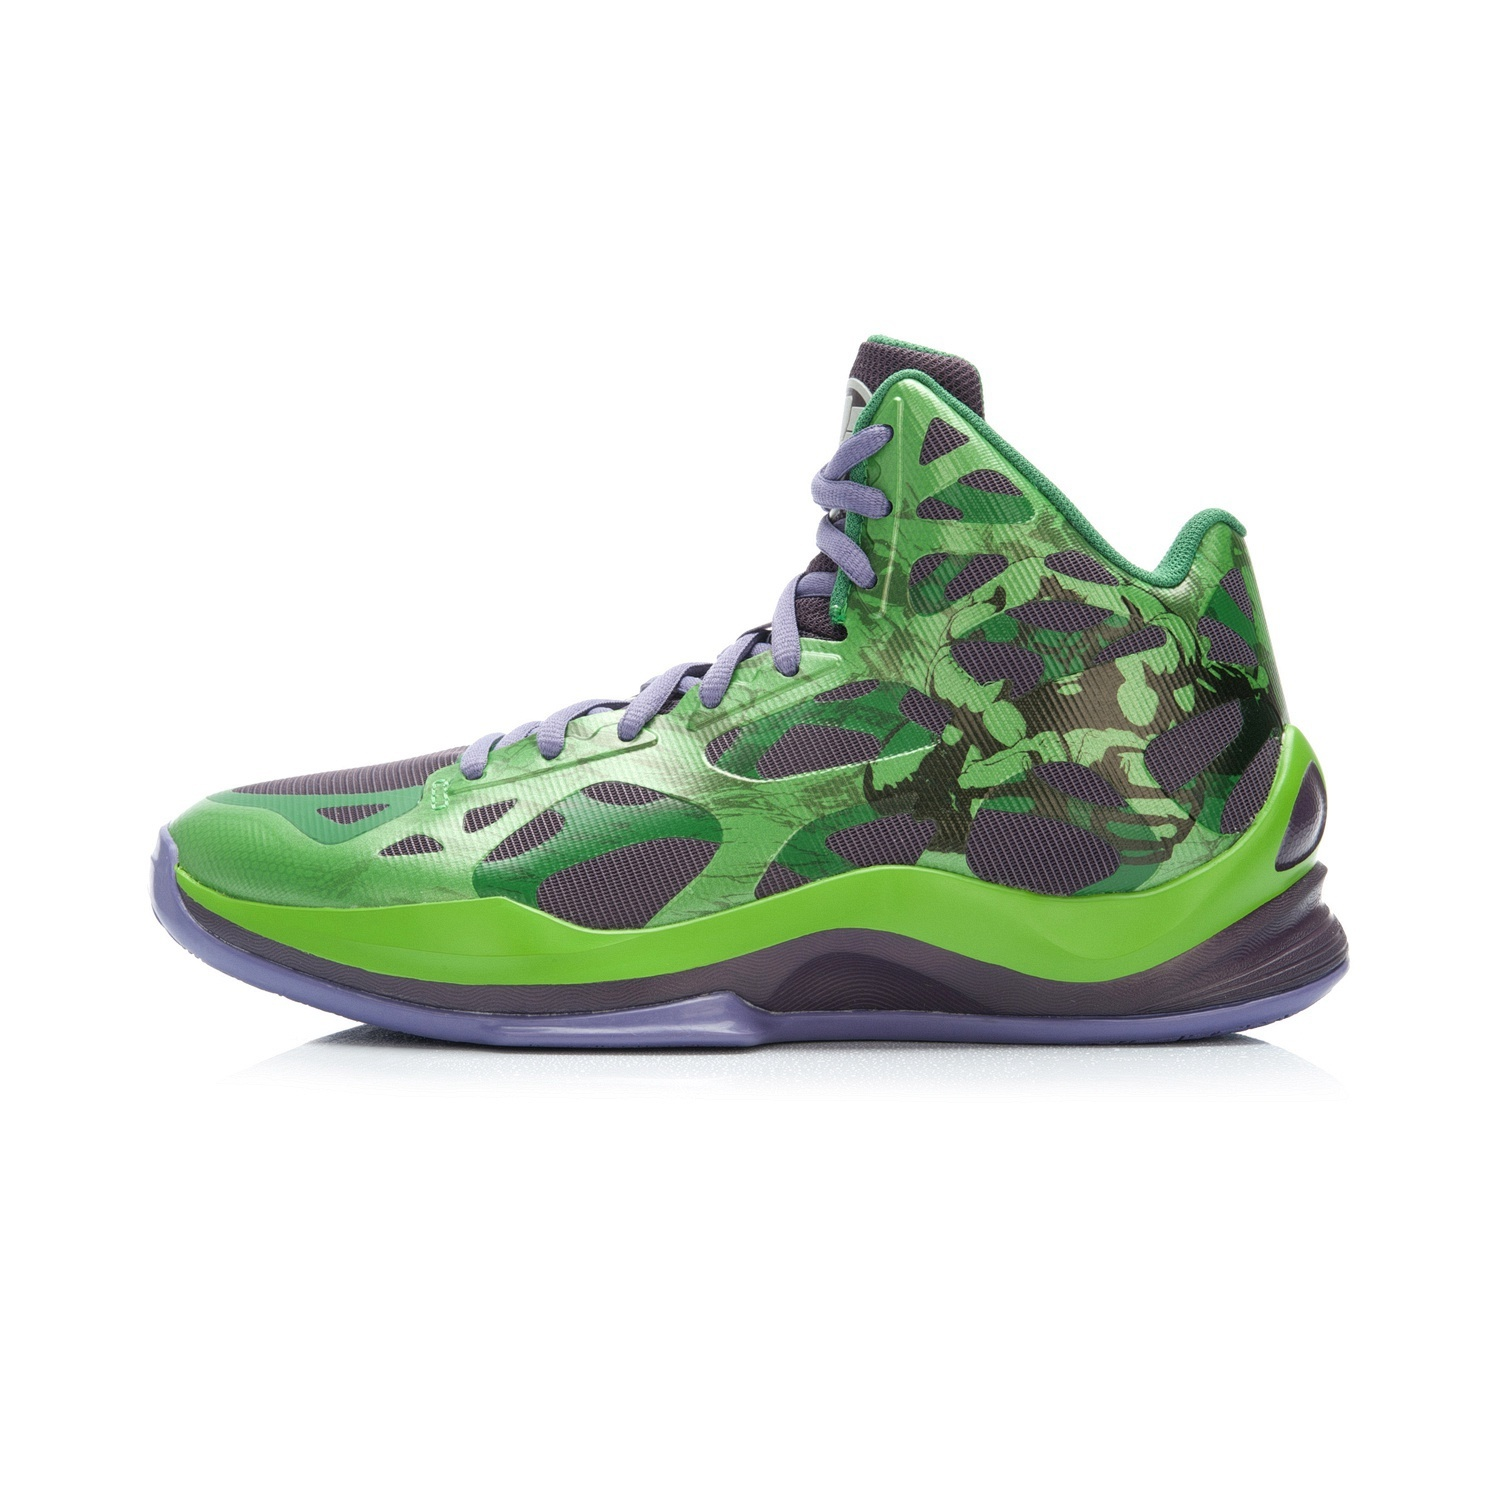 Li Ning Abpk 057 Sonic Hight Top Series E Shoes New Style Basketball